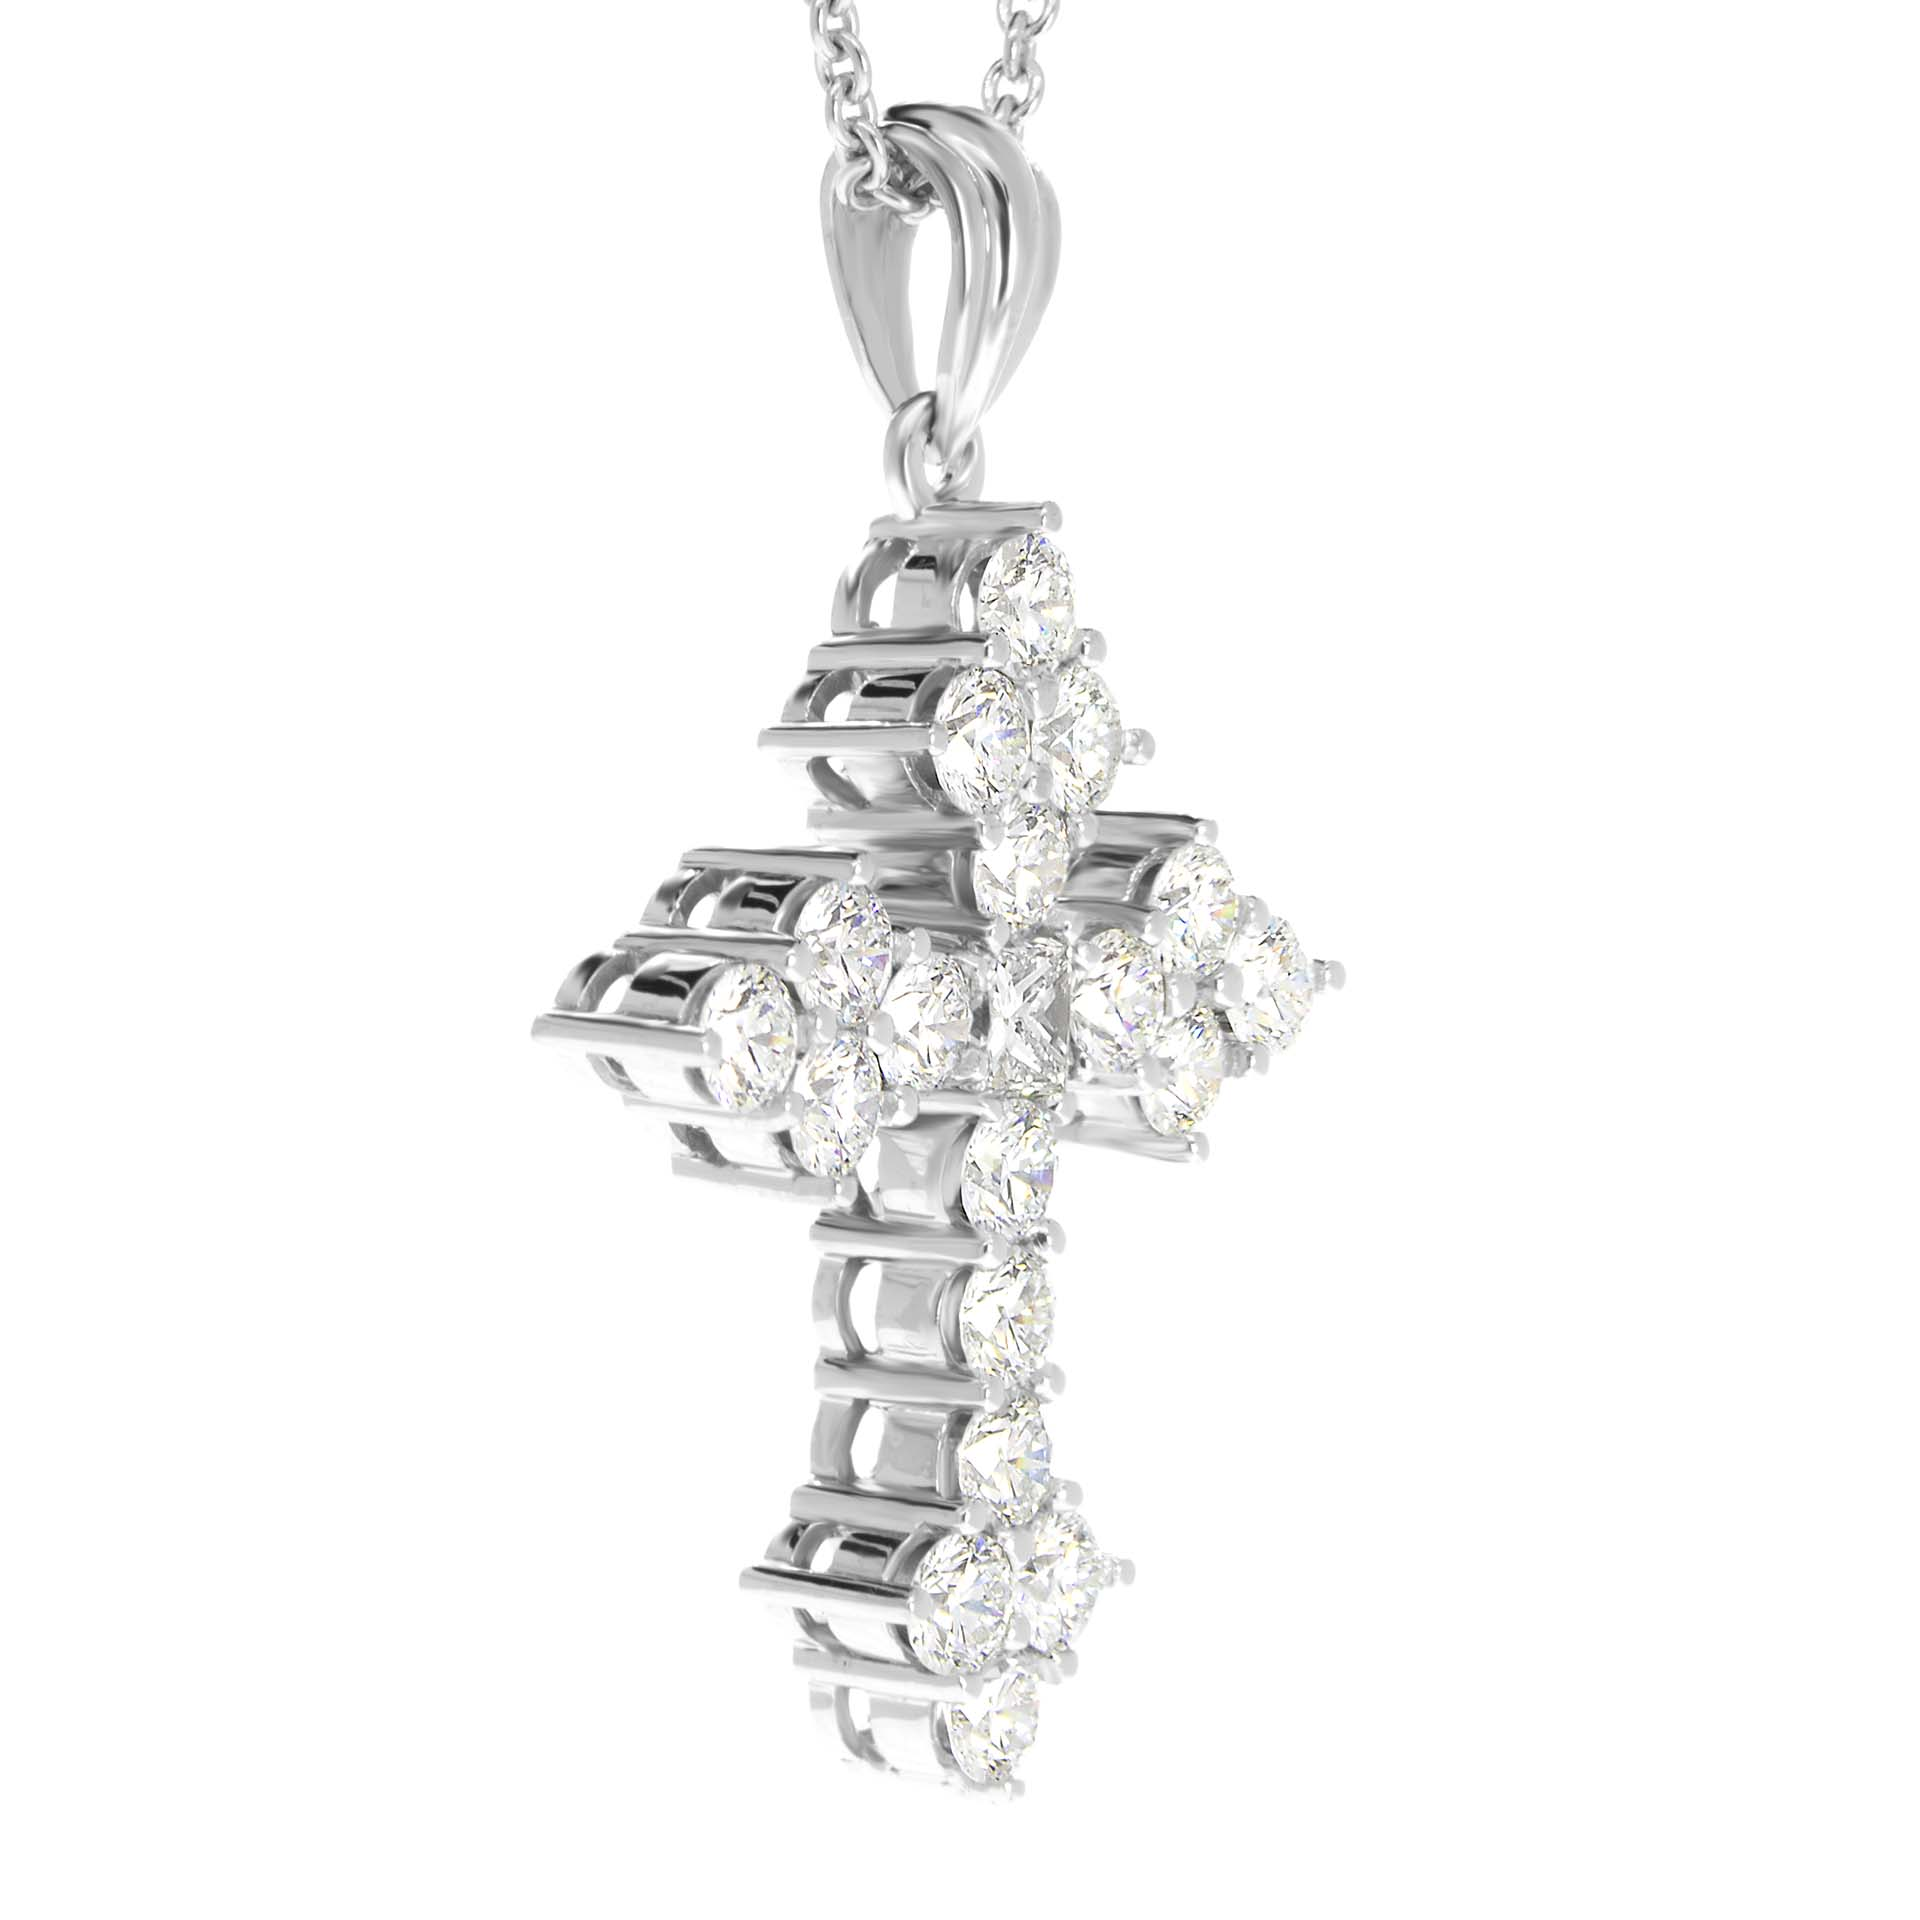 655aa37eb Diamond Cross Necklace Pendant 1.88 Carats Gold or Platinum ...